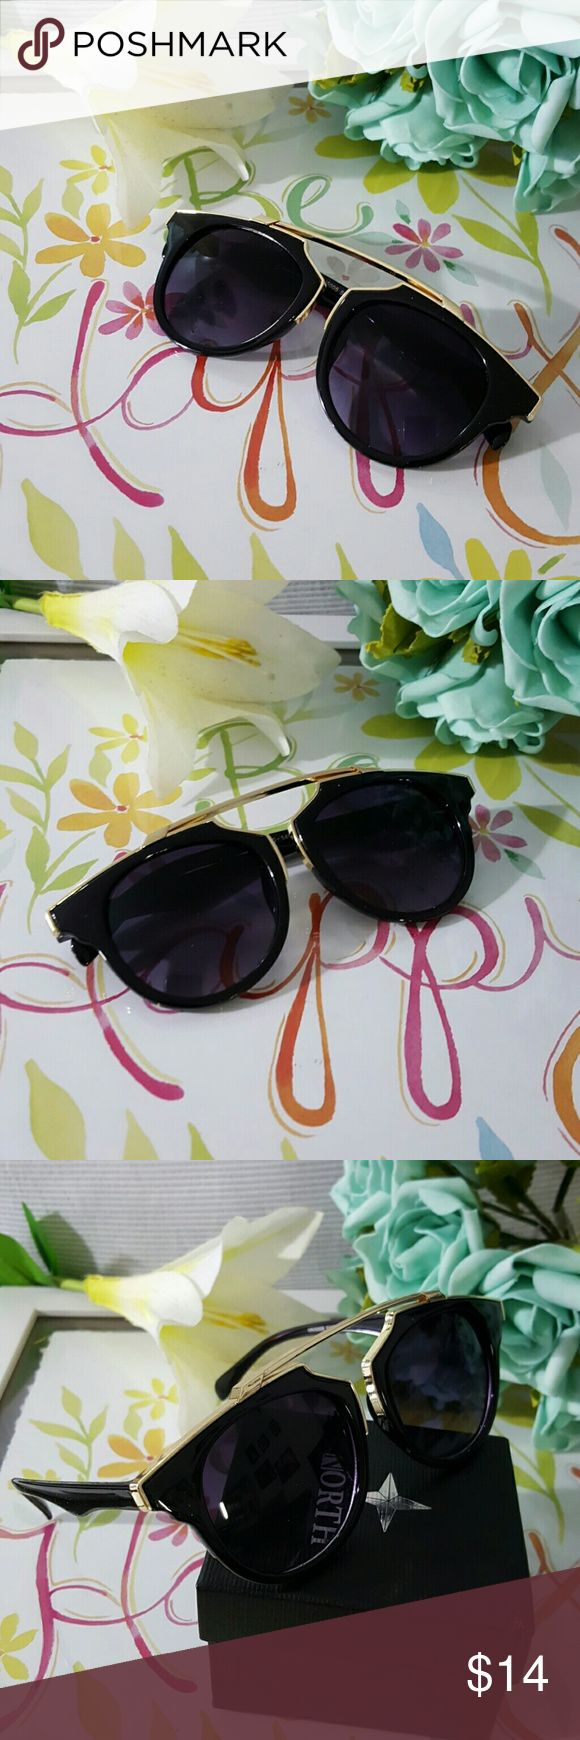 new Top quality Sunglasses Mirror d men or Women new Top quality Sunglasses Mirror d men or Women Brand  new Retro Cateye  Glasses  100% UV400 Protection Against Harmful UVA/UVB Driving Tags :  Also check my whole closet many other deals.. such as. Latex